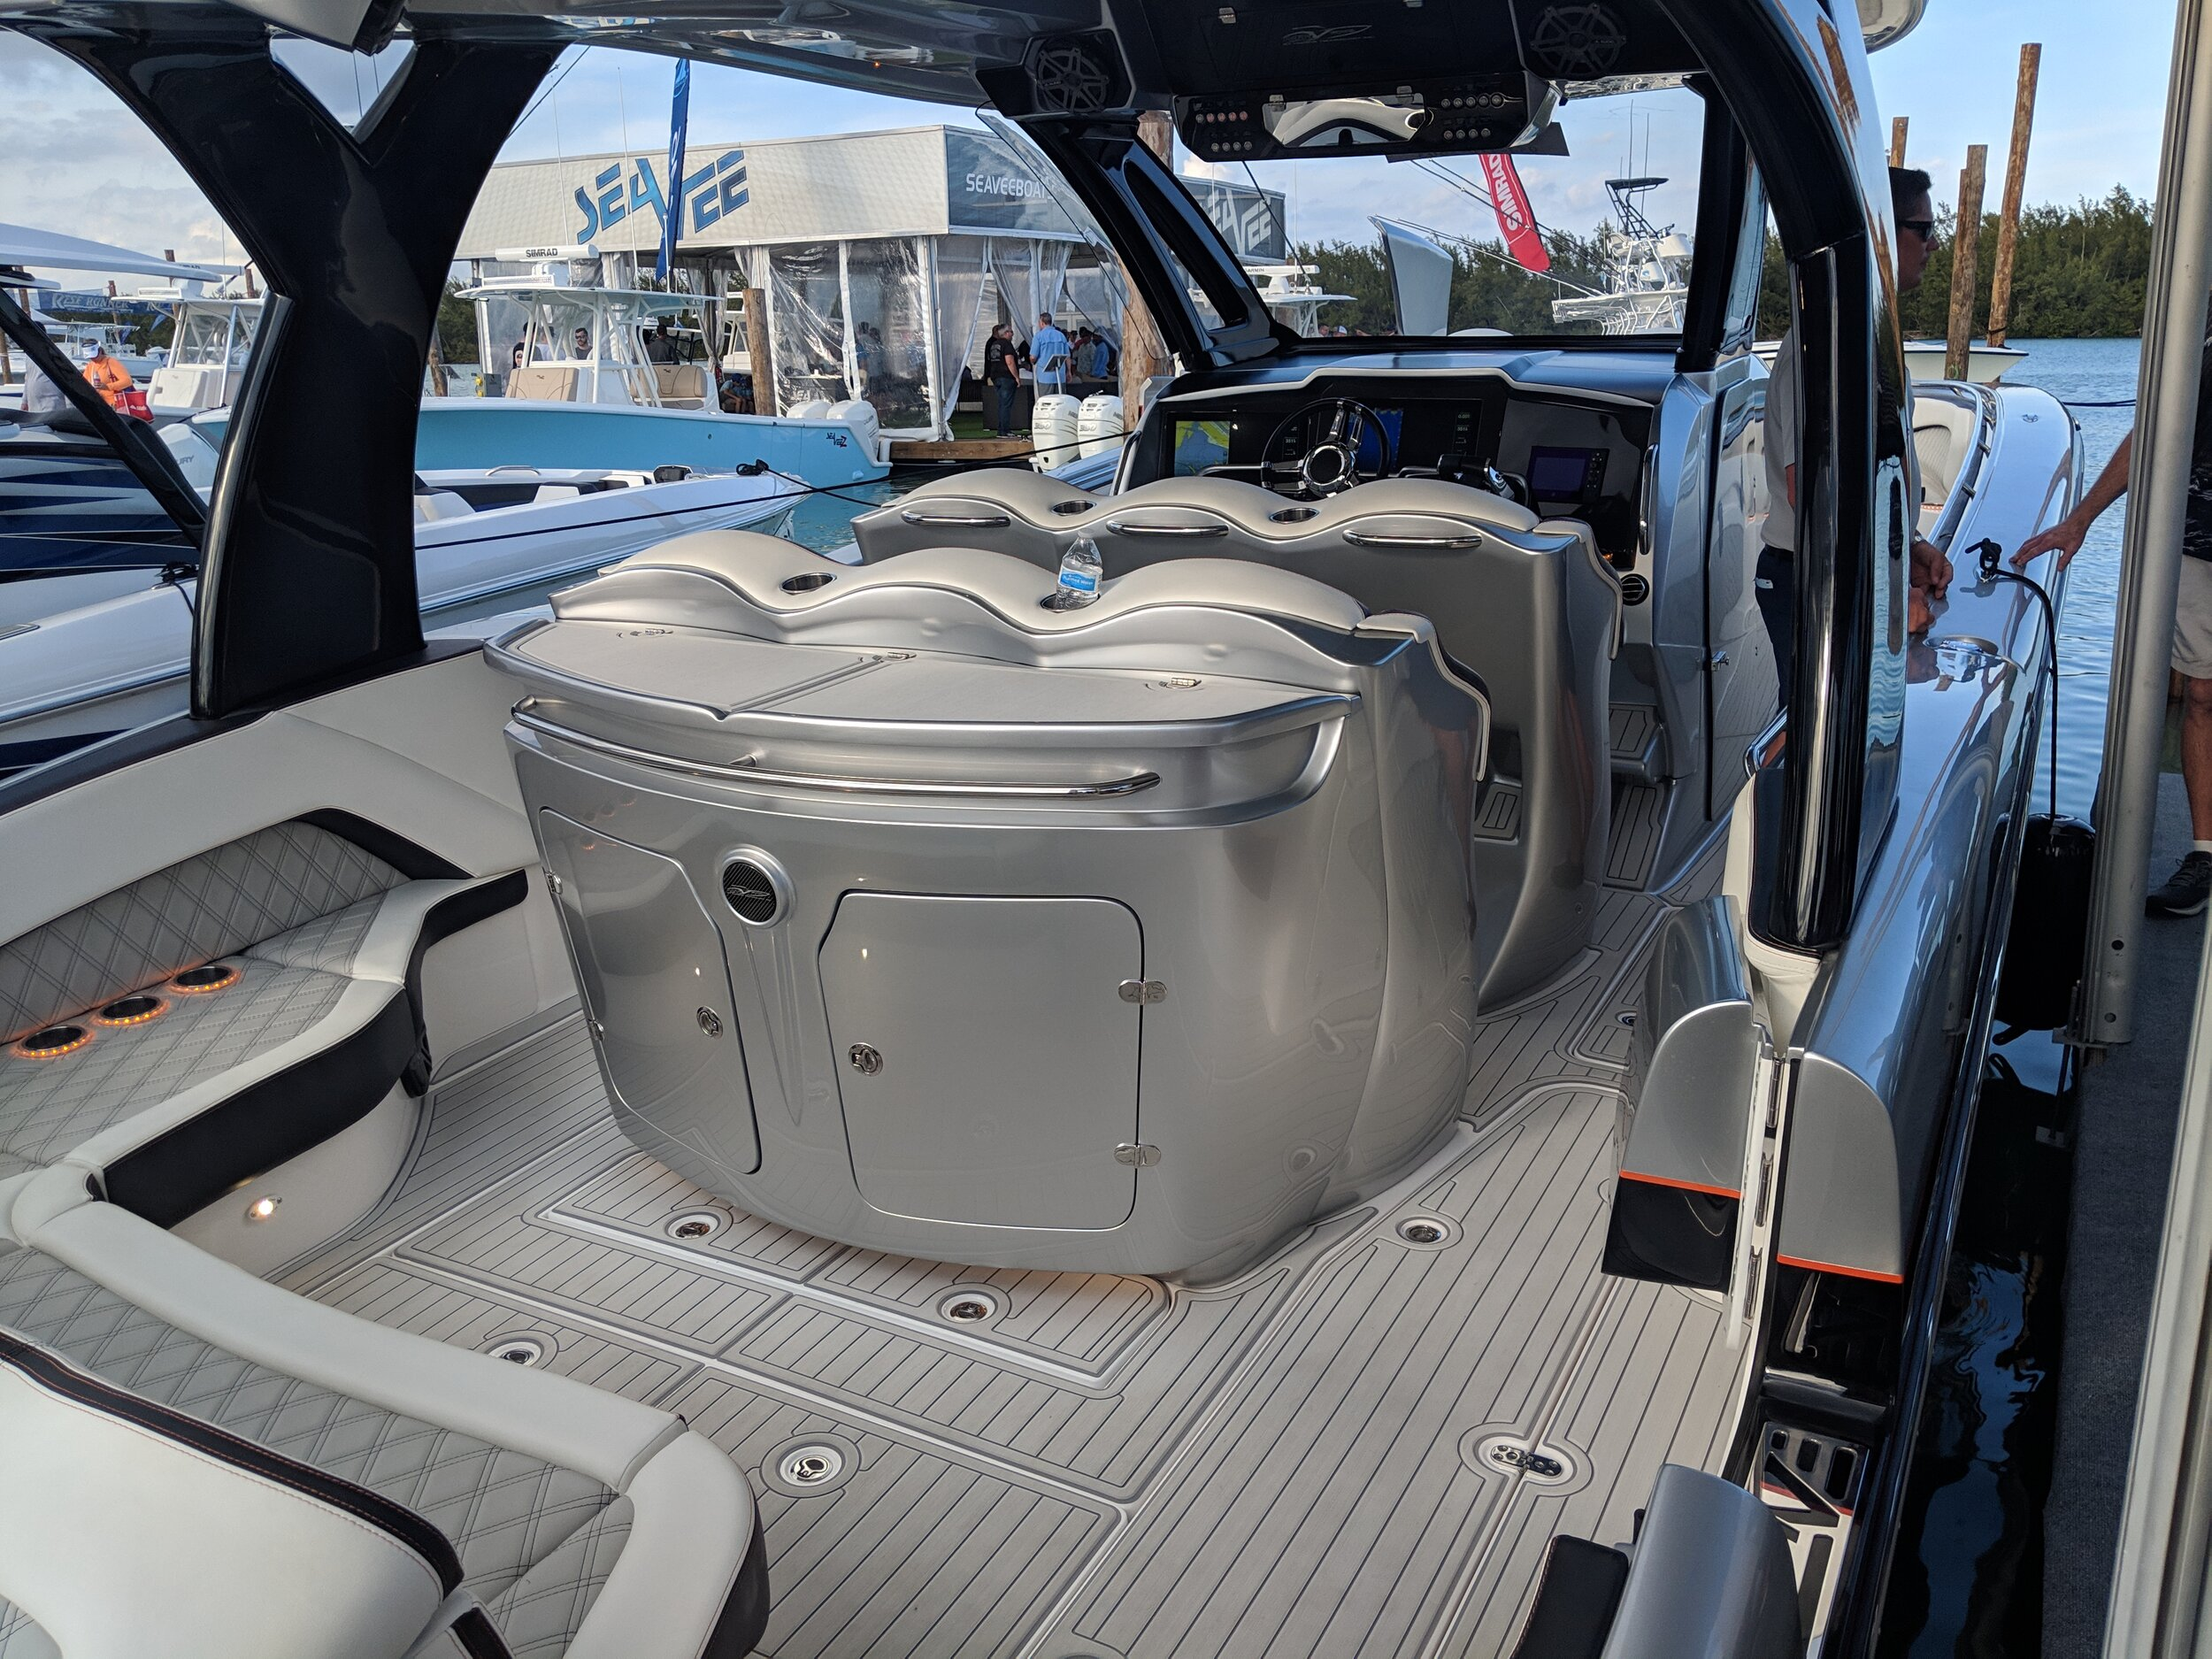 This actually looks more like a cocktail lounge on a spaceship than a proper boat interior. I don't find luxury center consoles all that comfortable, and you tend to do more standing in them.